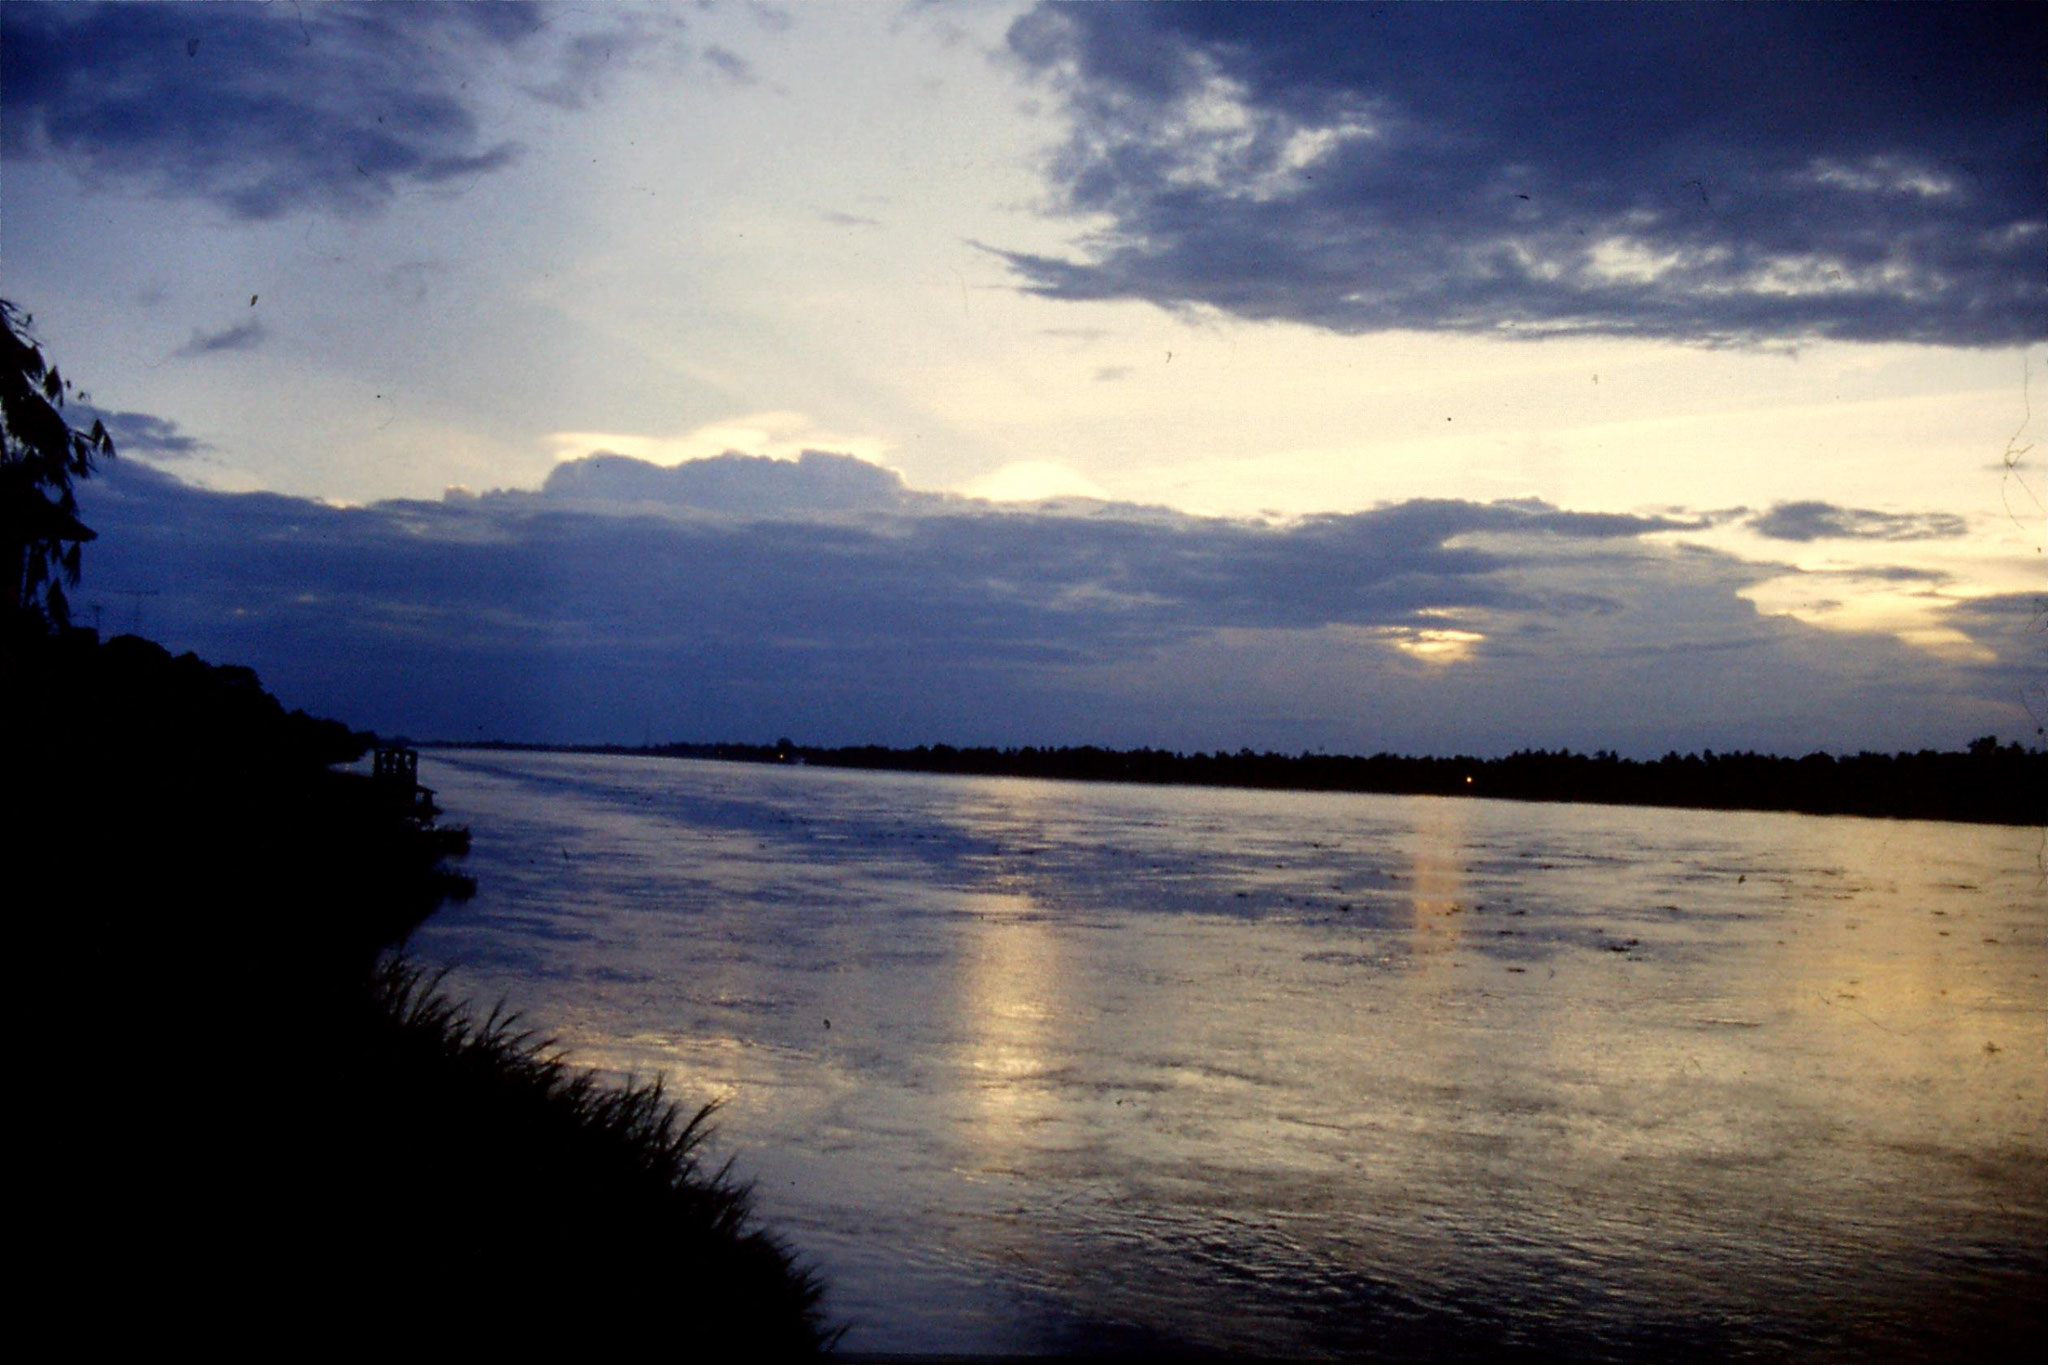 26/5/1990:11: Nong Khai sunset over Mekong